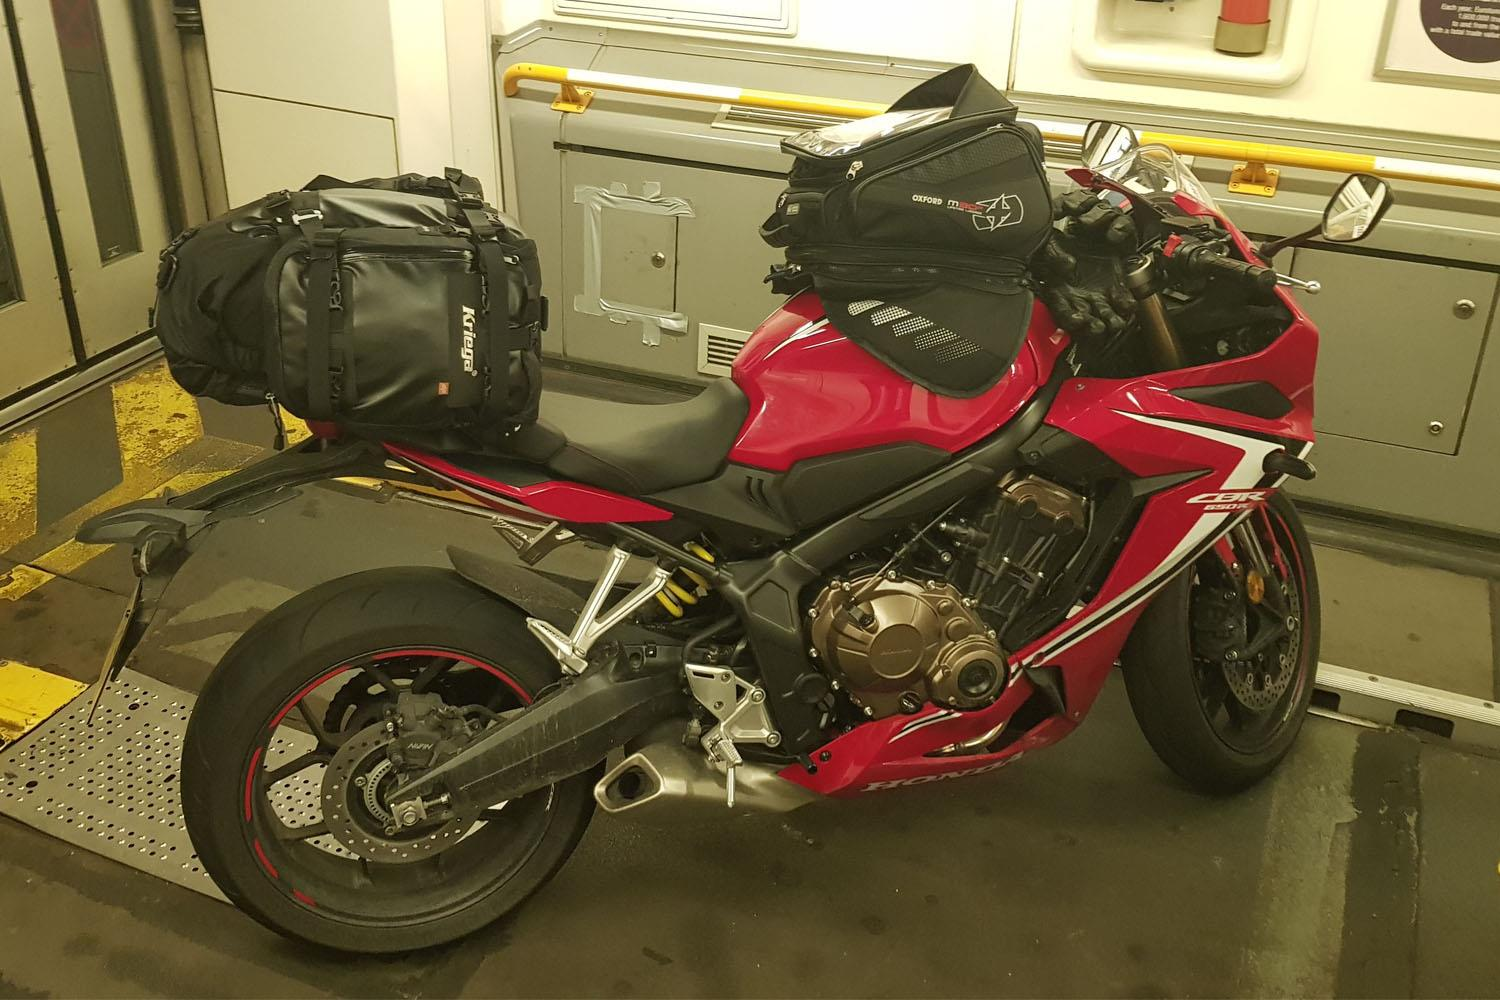 Honda CBR650R in the Channel Tunnel with luggage